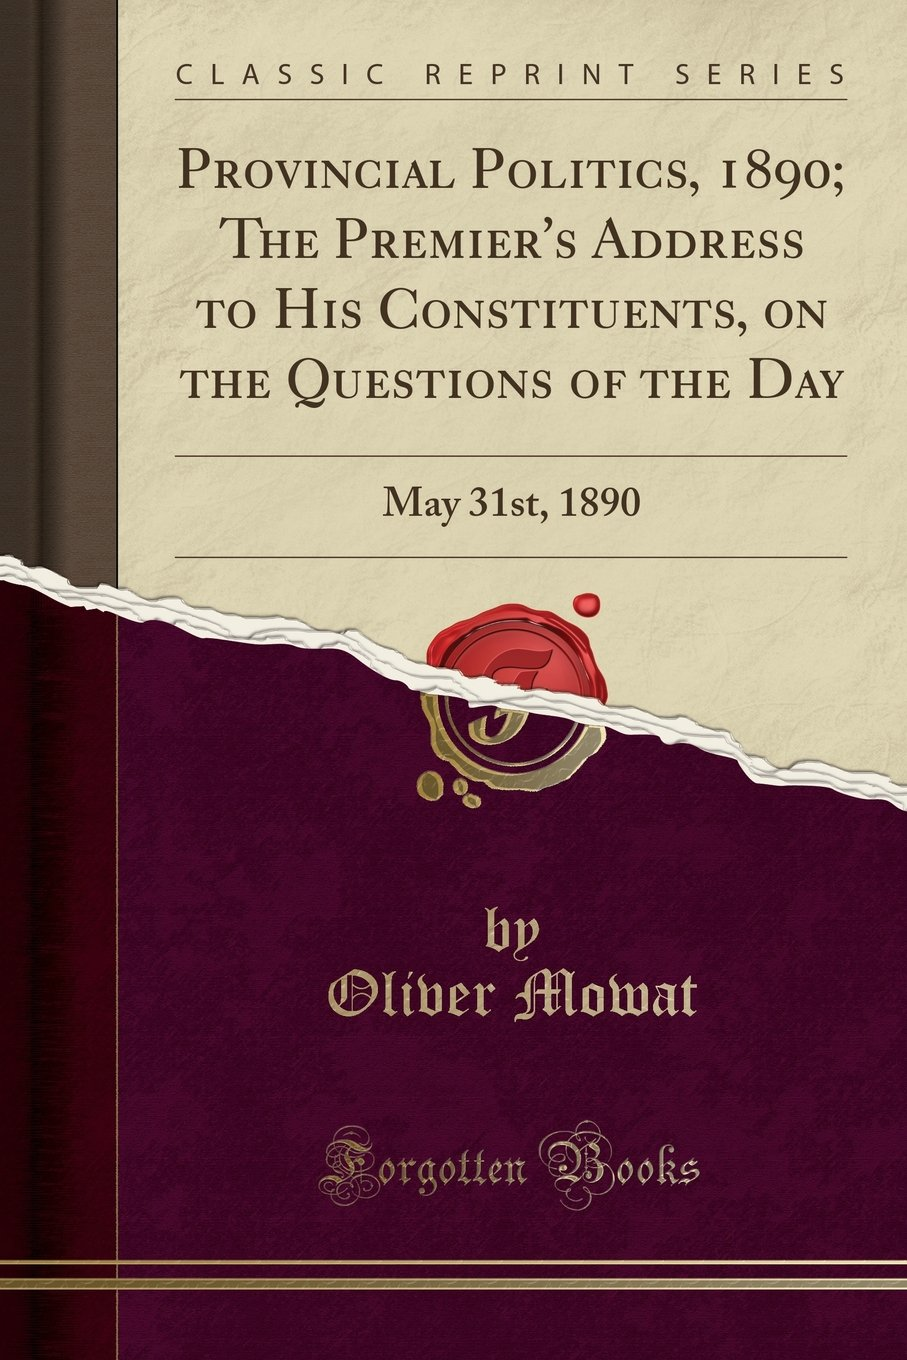 Download Provincial Politics, 1890; The Premier's Address to His Constituents, on the Questions of the Day: May 31st, 1890 (Classic Reprint) pdf epub